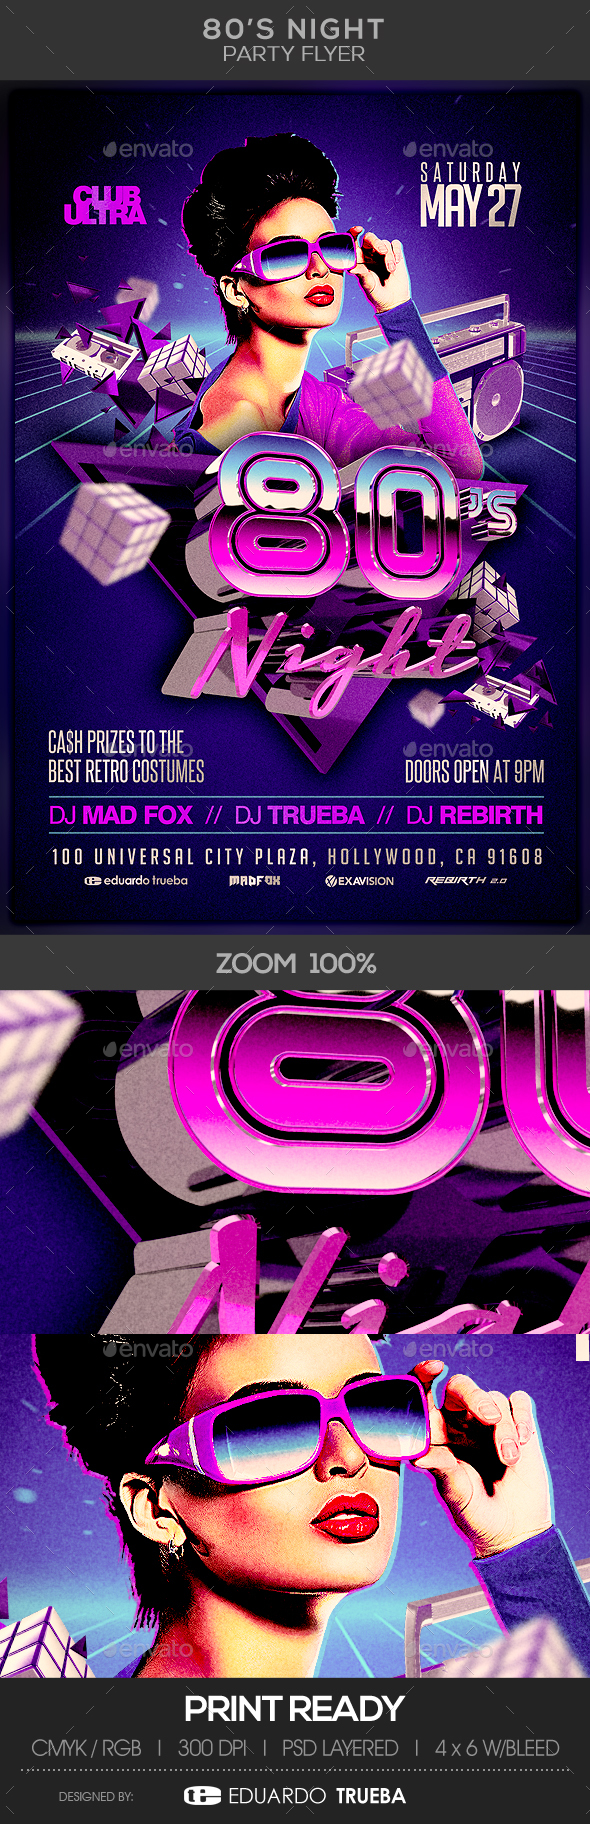 80's Night Party Flyer - Clubs & Parties Events